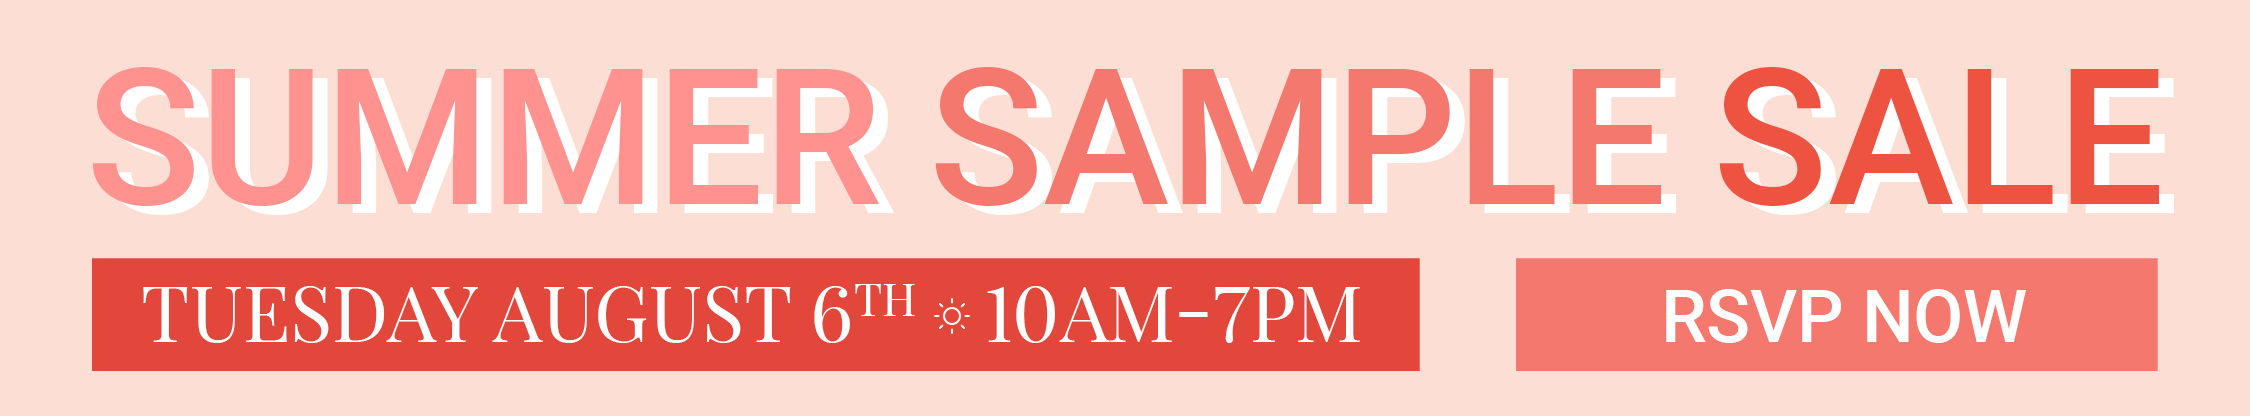 Summer Sample Sale Banner